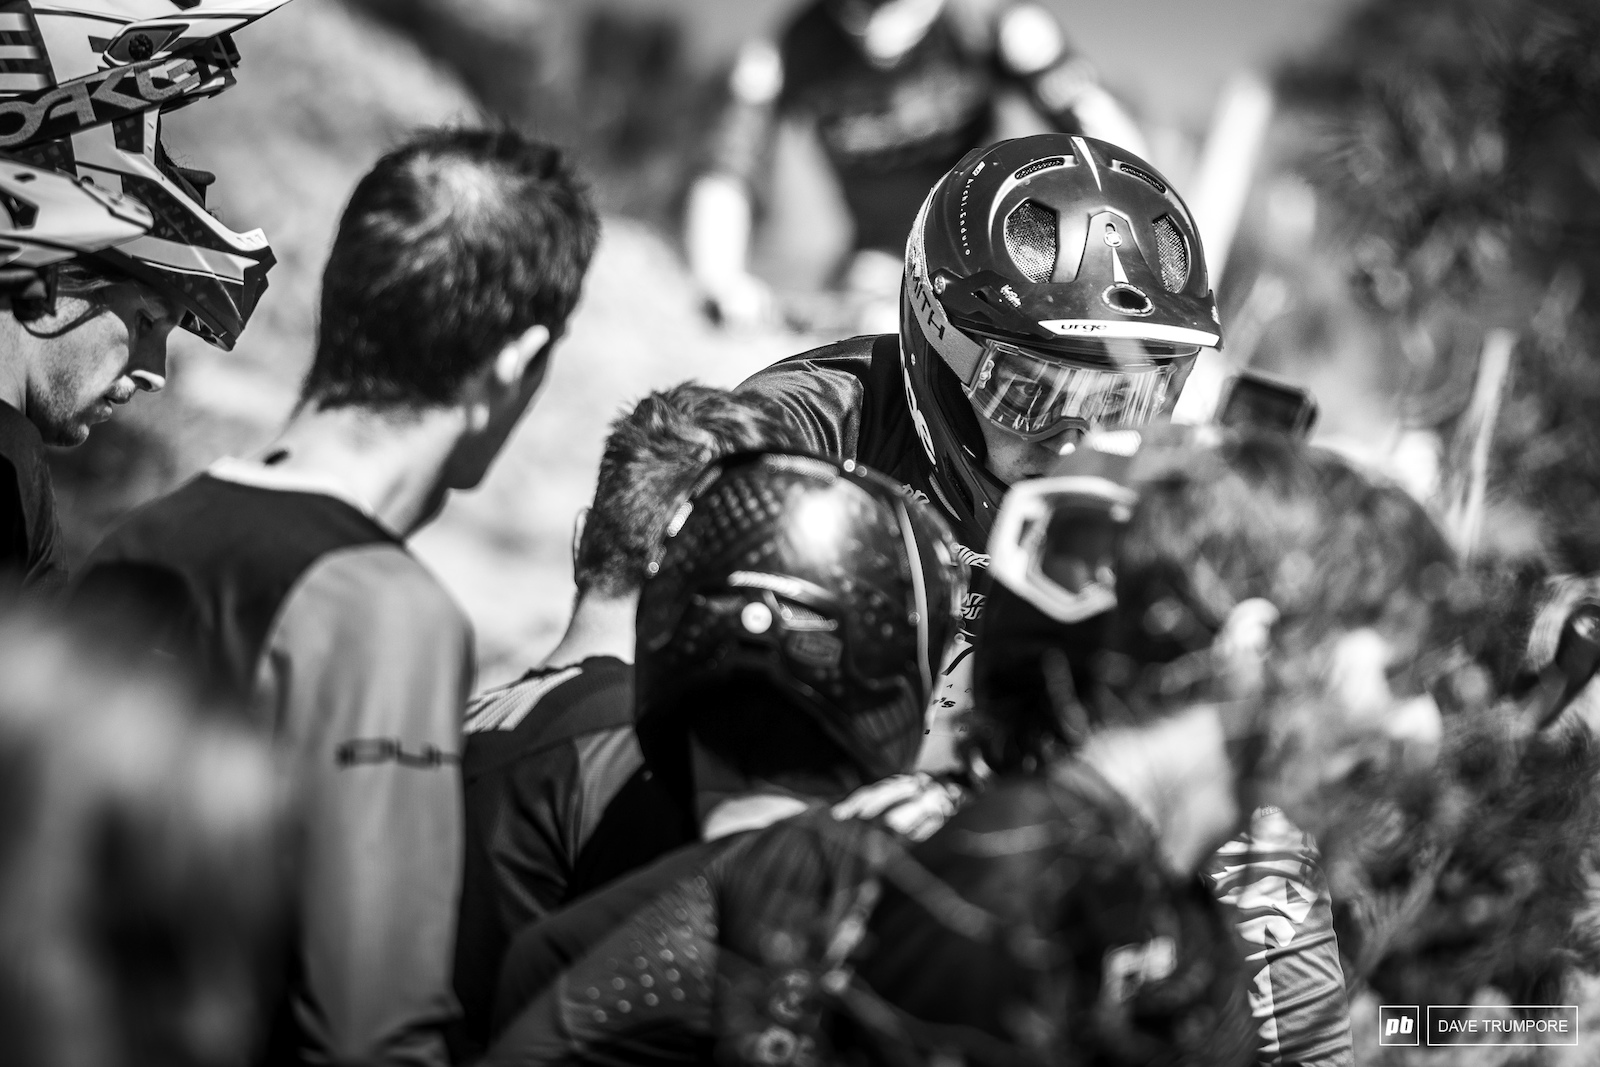 The top of stage 2 was thick with riders in the line as they all jammed into the track to scope out one particular rocky chute. Only when a rider approached would they part like the Red Sea.